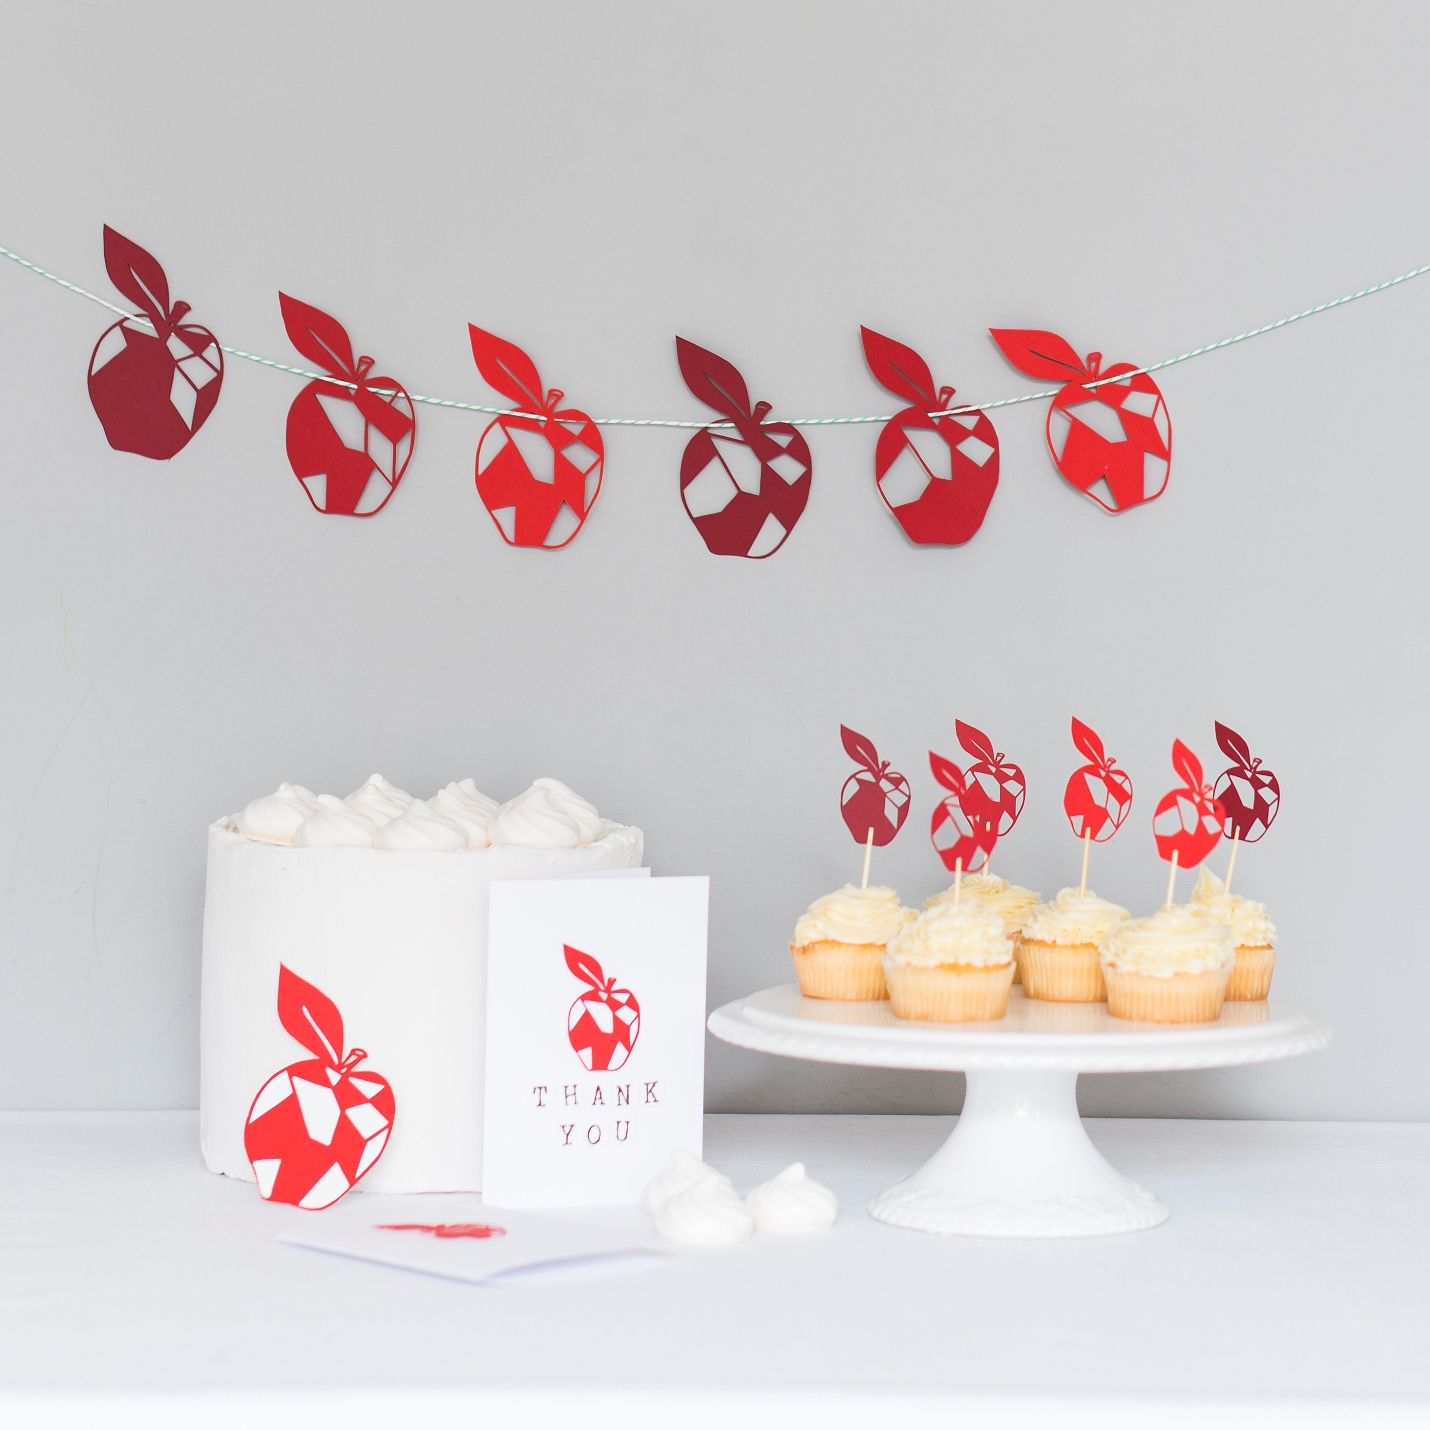 Red Apple Paper Garland, Card, Cake Toppers and gift tag